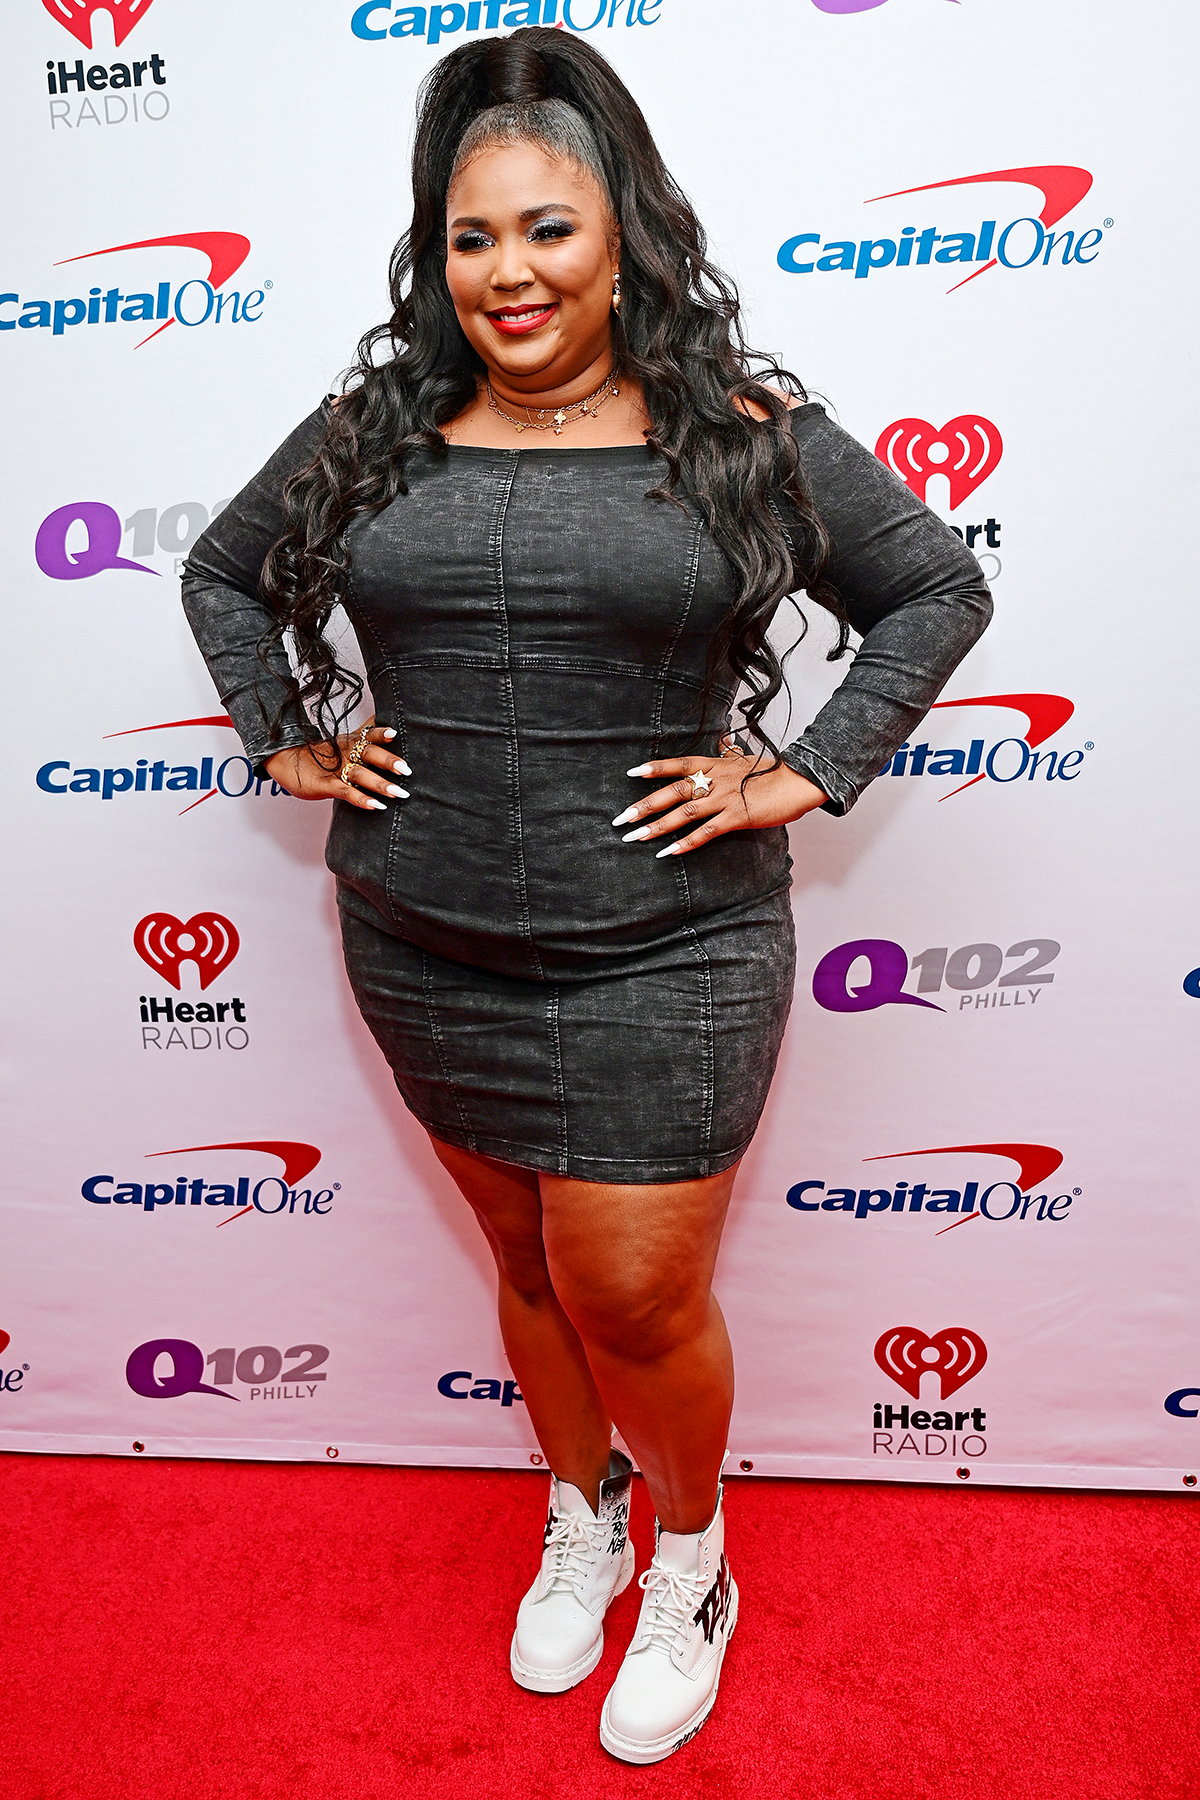 PHILADELPHIA, PENNSYLVANIA - DECEMBER 11: Lizzo attends Q102's Jingle Ball 2019 Presented by Capital One at Wells Fargo Center on December 11, 2019